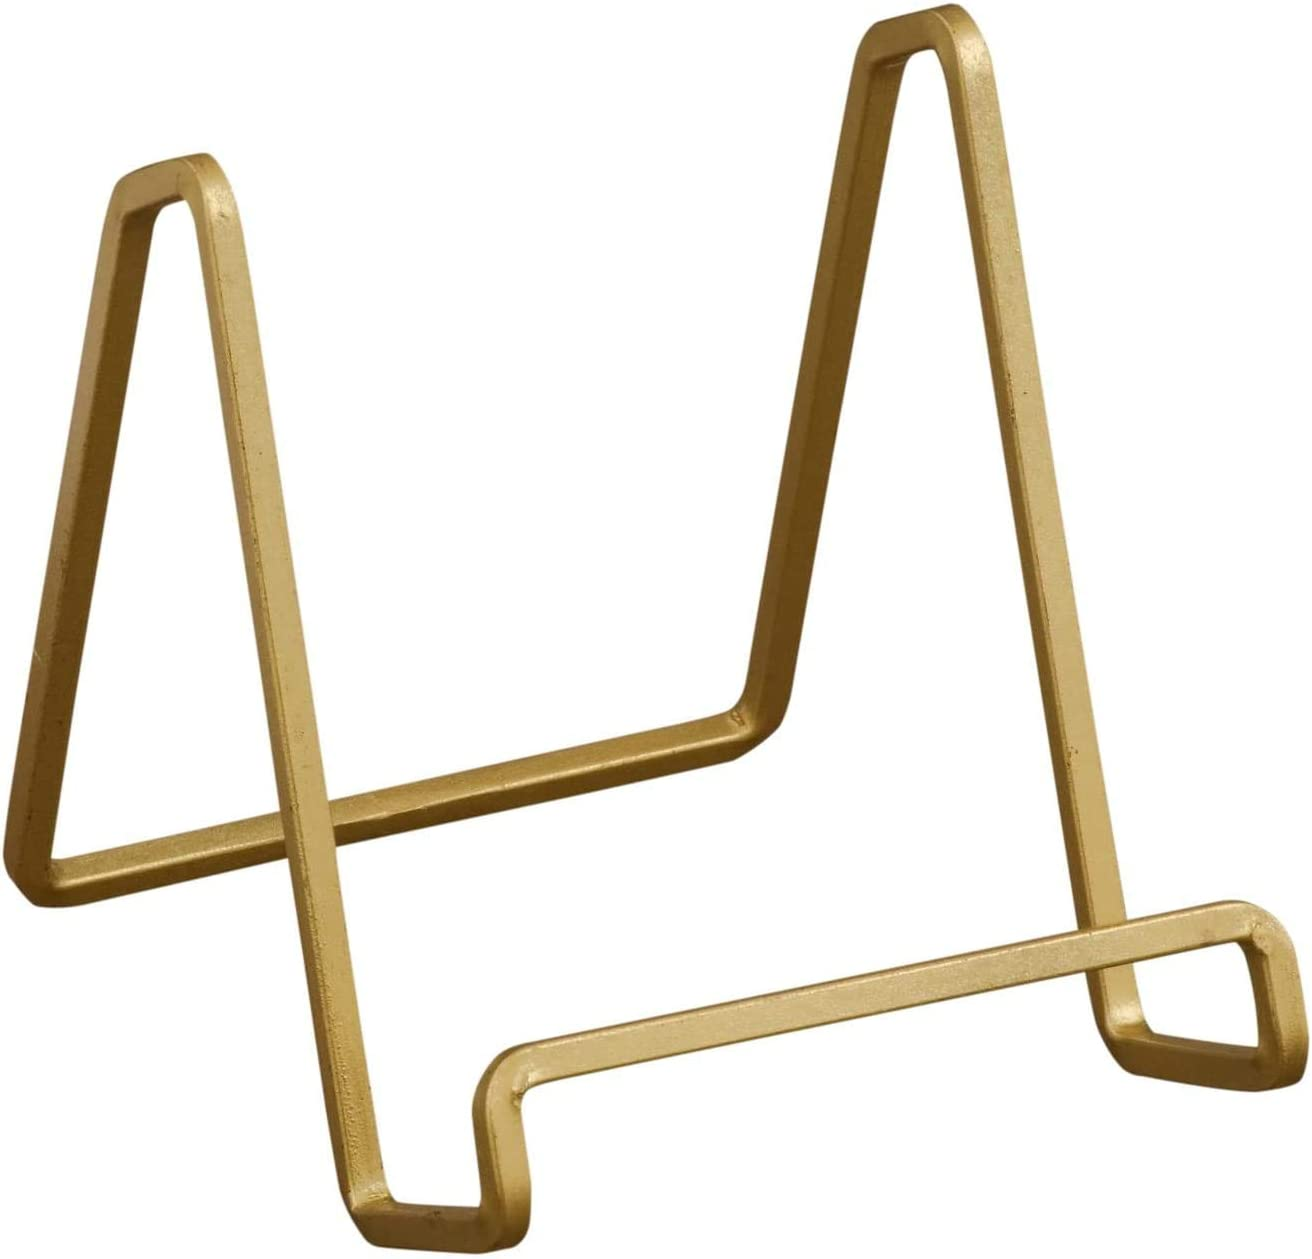 TRIPAR 2 Pack 50224 Square Wire Stand Plate Art Photo Holder, Gold Metal